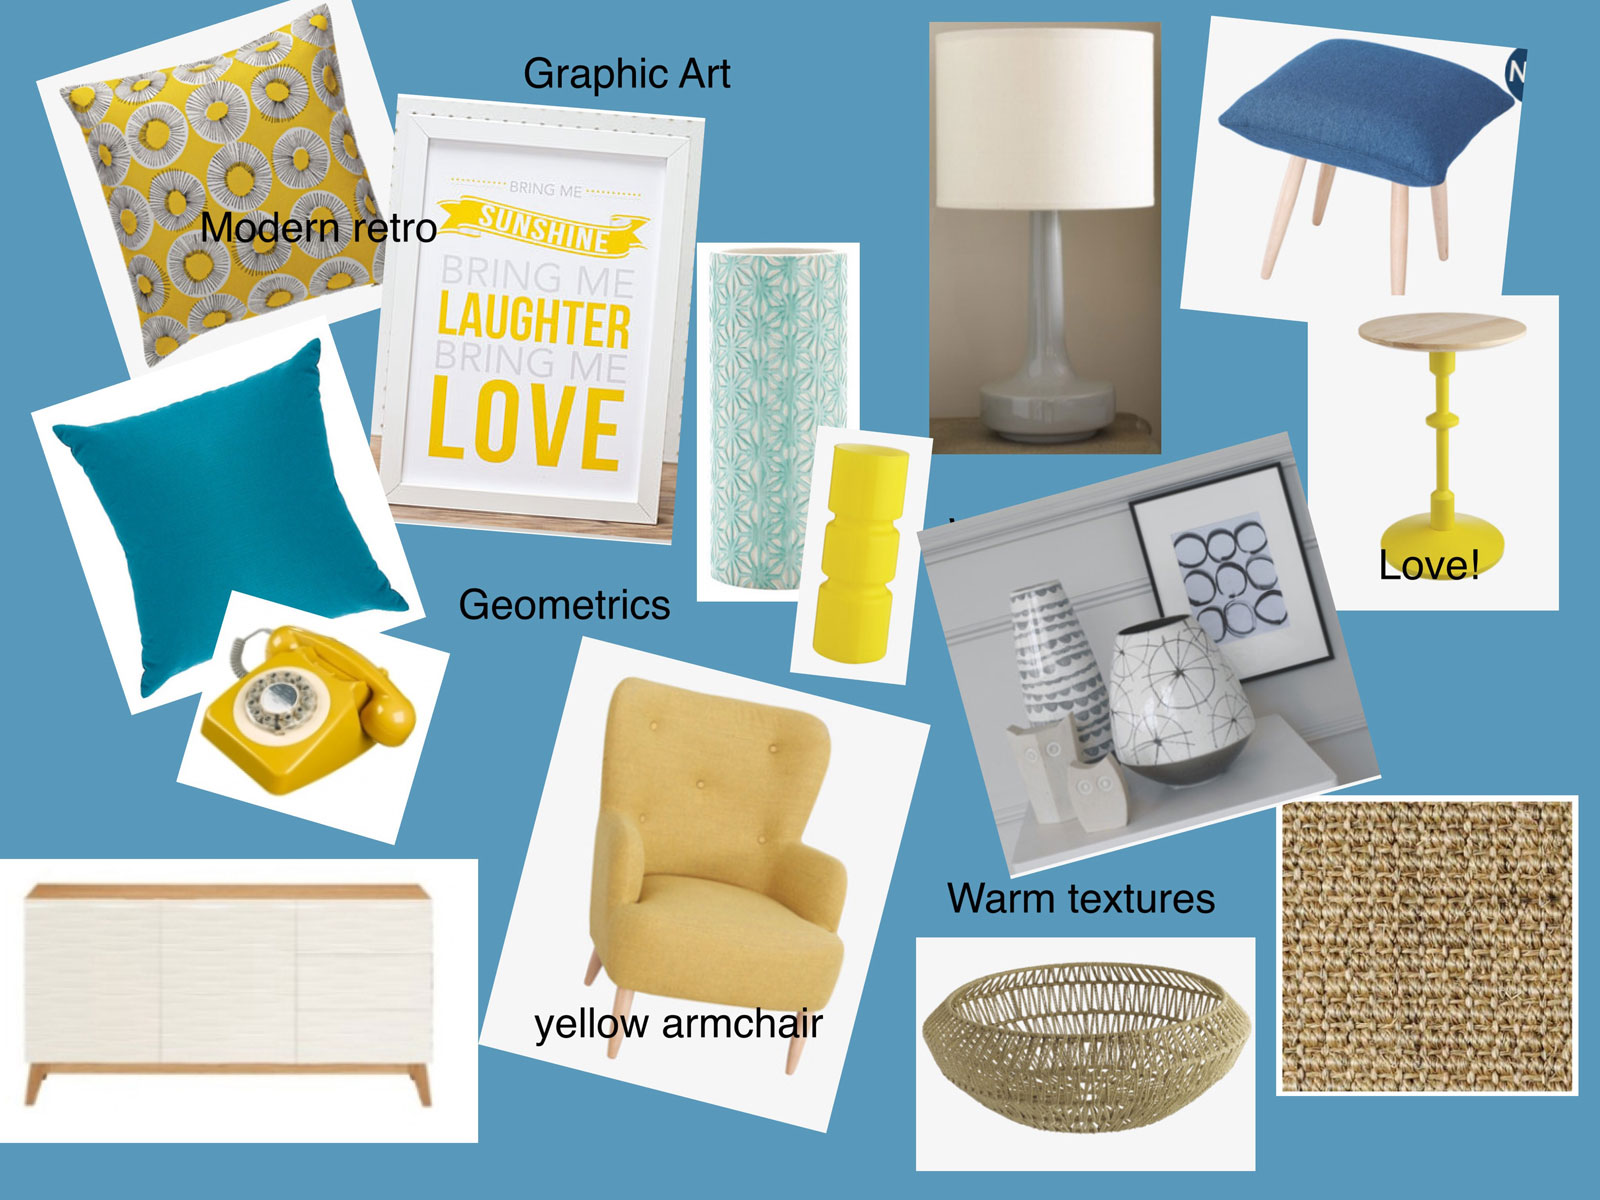 Selected products for the room scheme